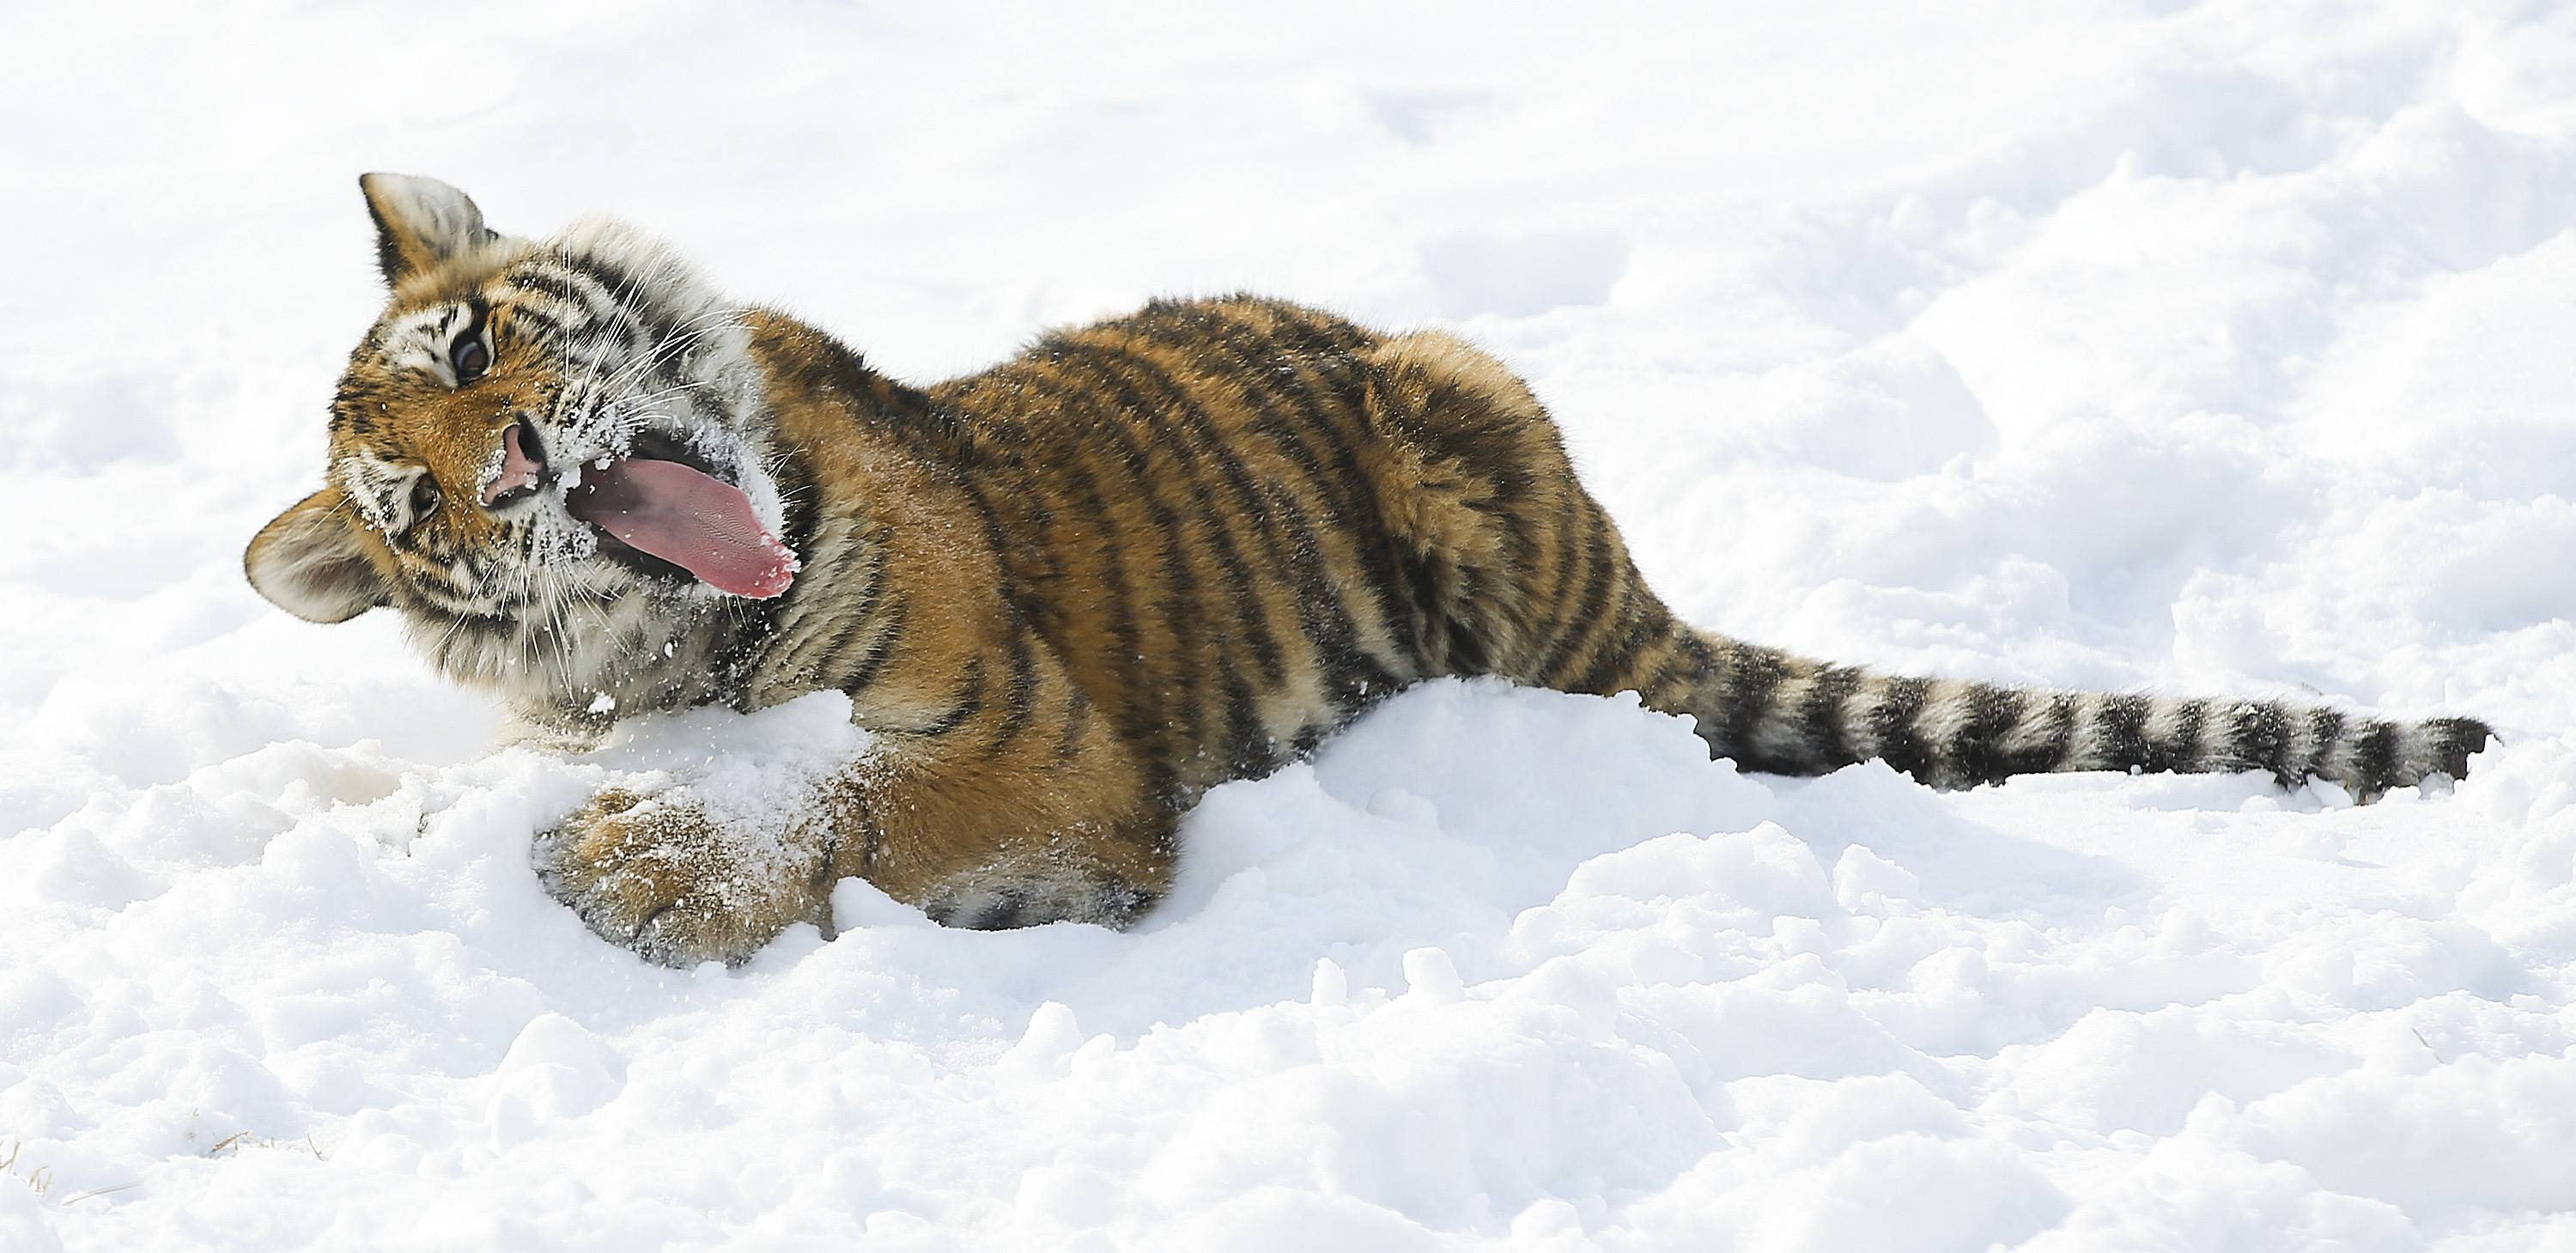 An Amur tiger plays in the snow at the Sedgwick County Zoo, Wednesday, Feb. 5, 2014, in Wichita, Kan.